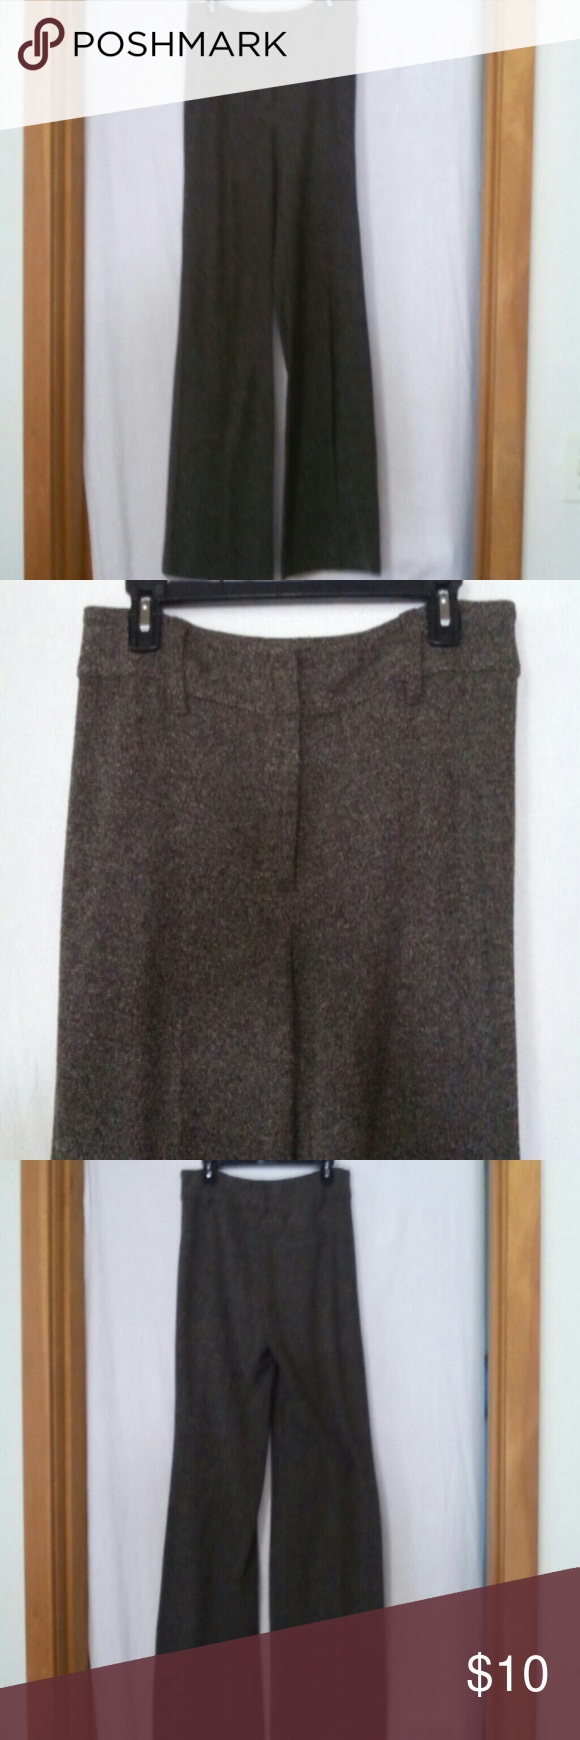 """J jill women size 8 career dress pants Polyester acrylic and rayon, black and white tweed, zipper with an inside metal closure and anchor button, right slit back pocket, waist 33"""", front rise 9"""", inseam 32"""", barely worn J jill Pants"""